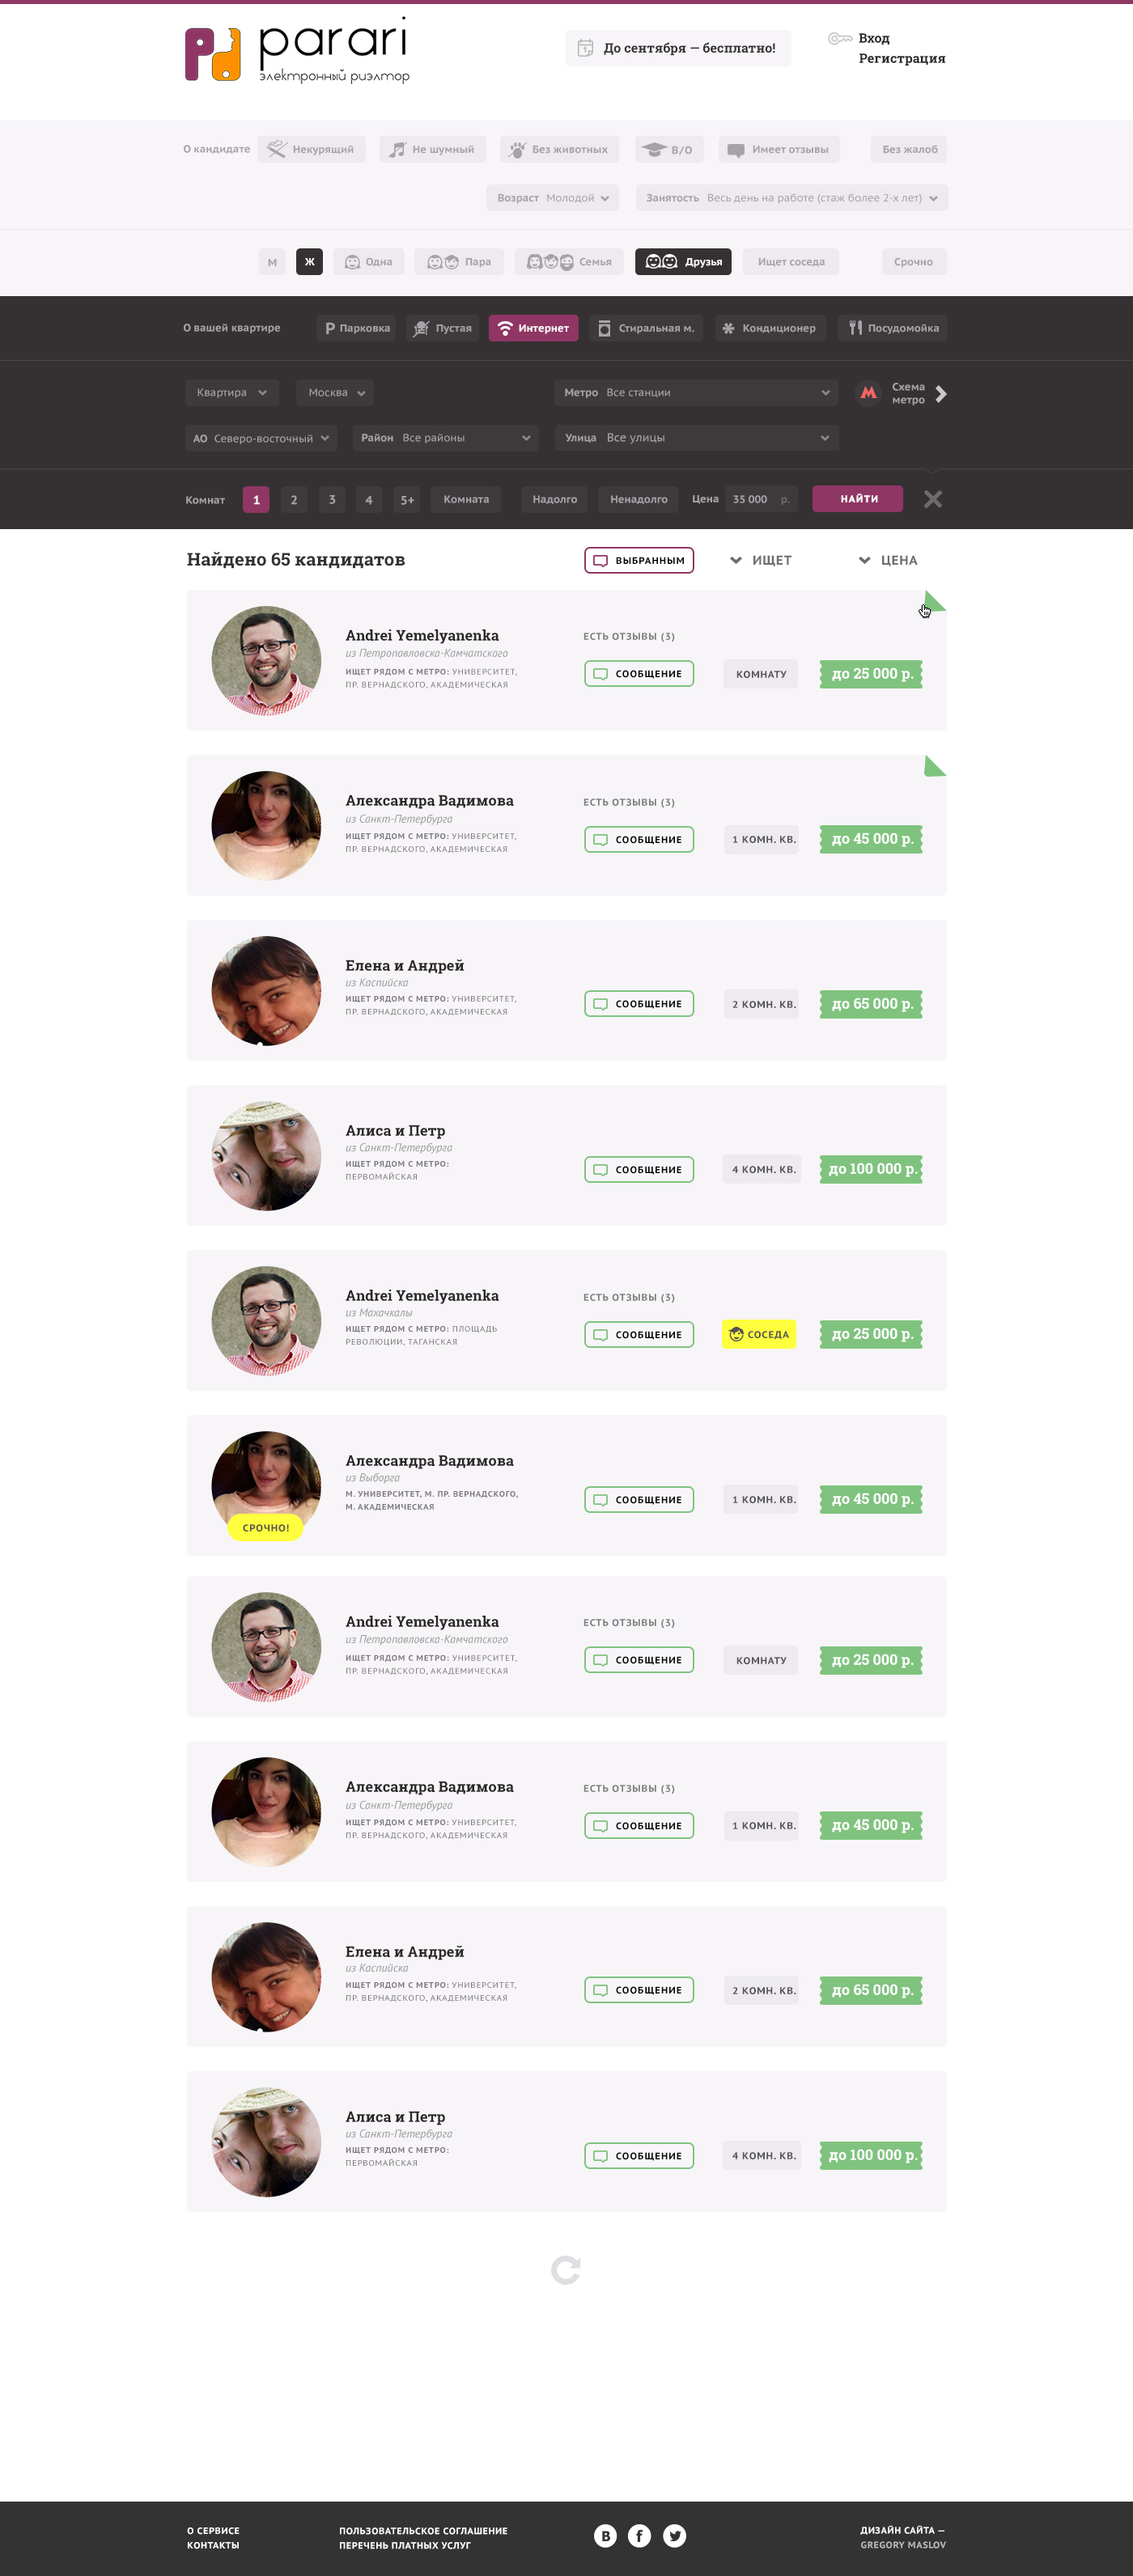 PARARI-31.01.14-PEOPLE-SEARCH-FULL